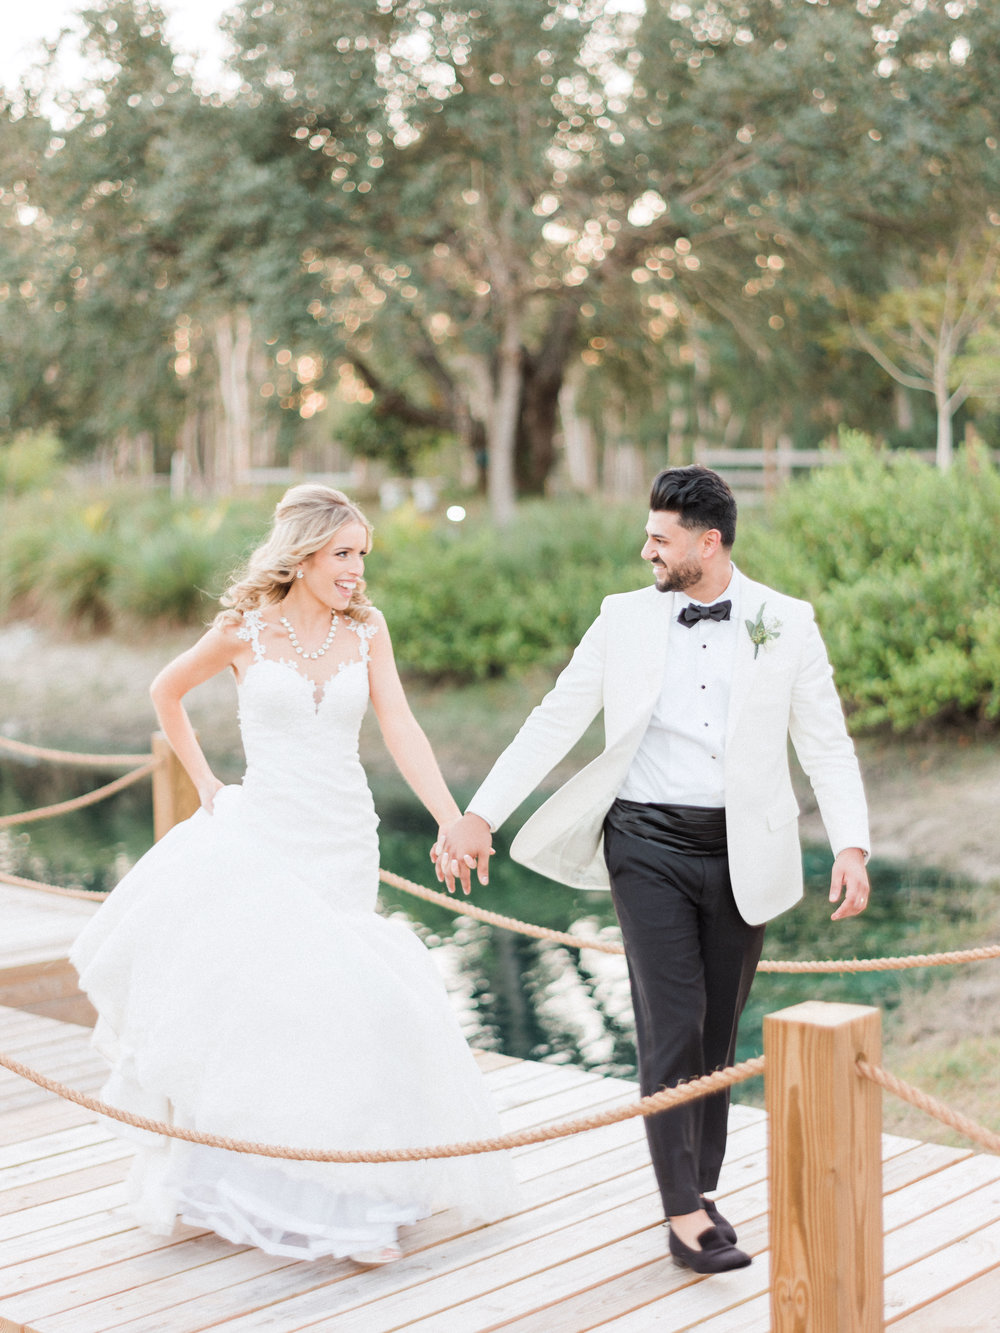 first-look-florida-wedding-fort-myers-la-casa-toscana-outdoor-ceremony-winter-wedding-brown-chairs-white-gazebo-planned-by-mostly-becky-weddings-traveling-wedding-planner-destination-wedding-lakeside-bridal-portraits-bride-groom-black-tie-tux-formal-wedding